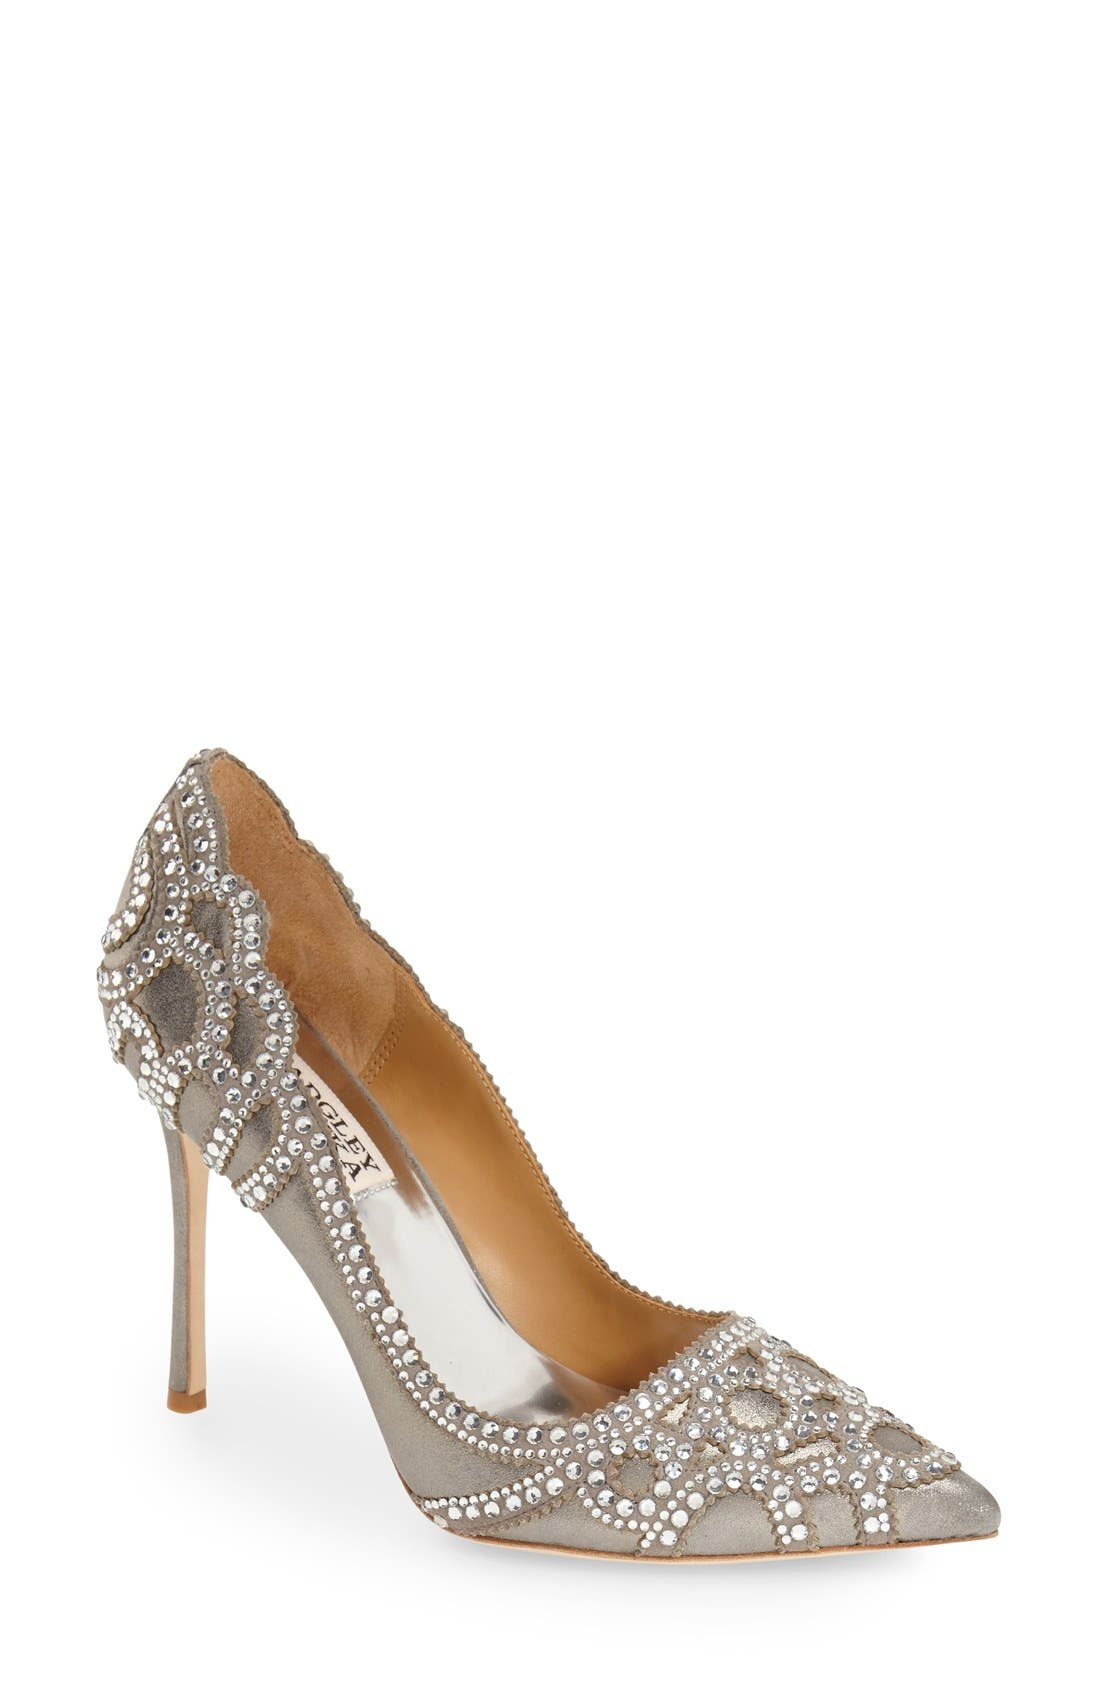 Badgley Mischka 'Rouge II' Crystal Pointy Toe Pump,                             Main thumbnail 1, color,                             040